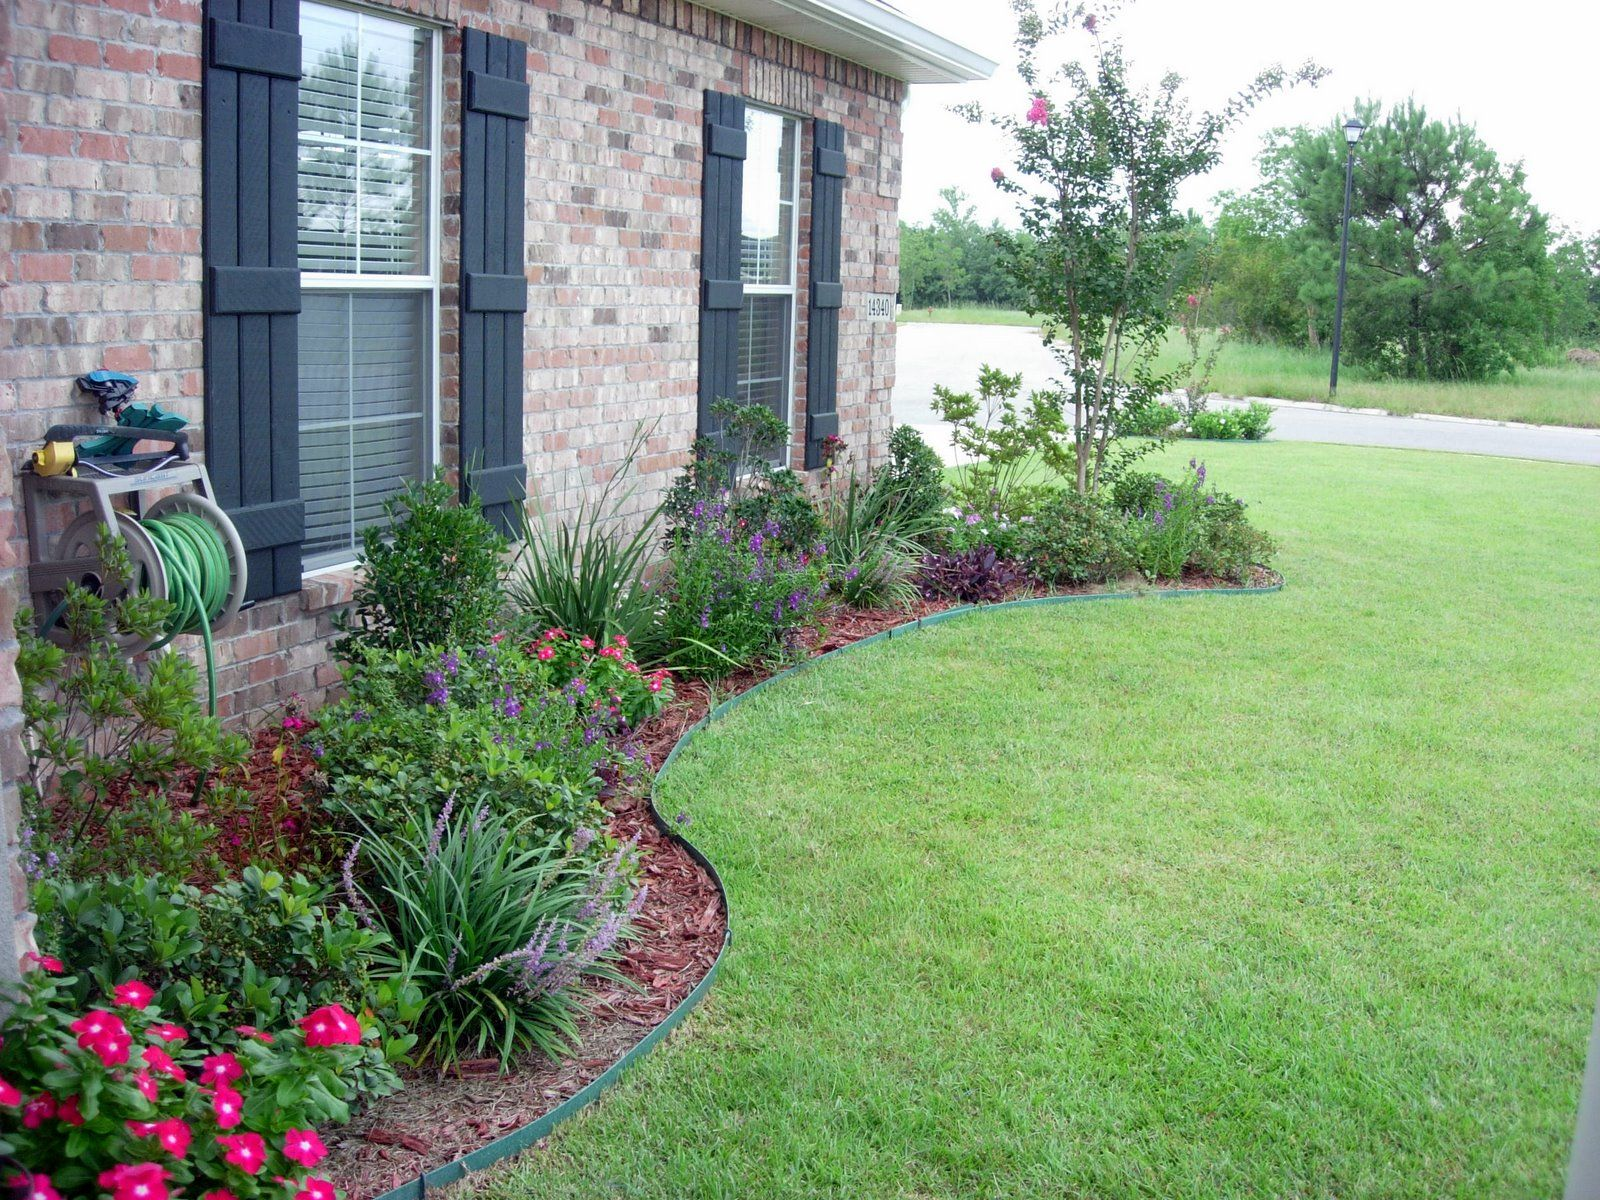 Simple backyard flower gardens - Flower Bed Designs For Front Of House Use Shrubs Small Trees To Form The